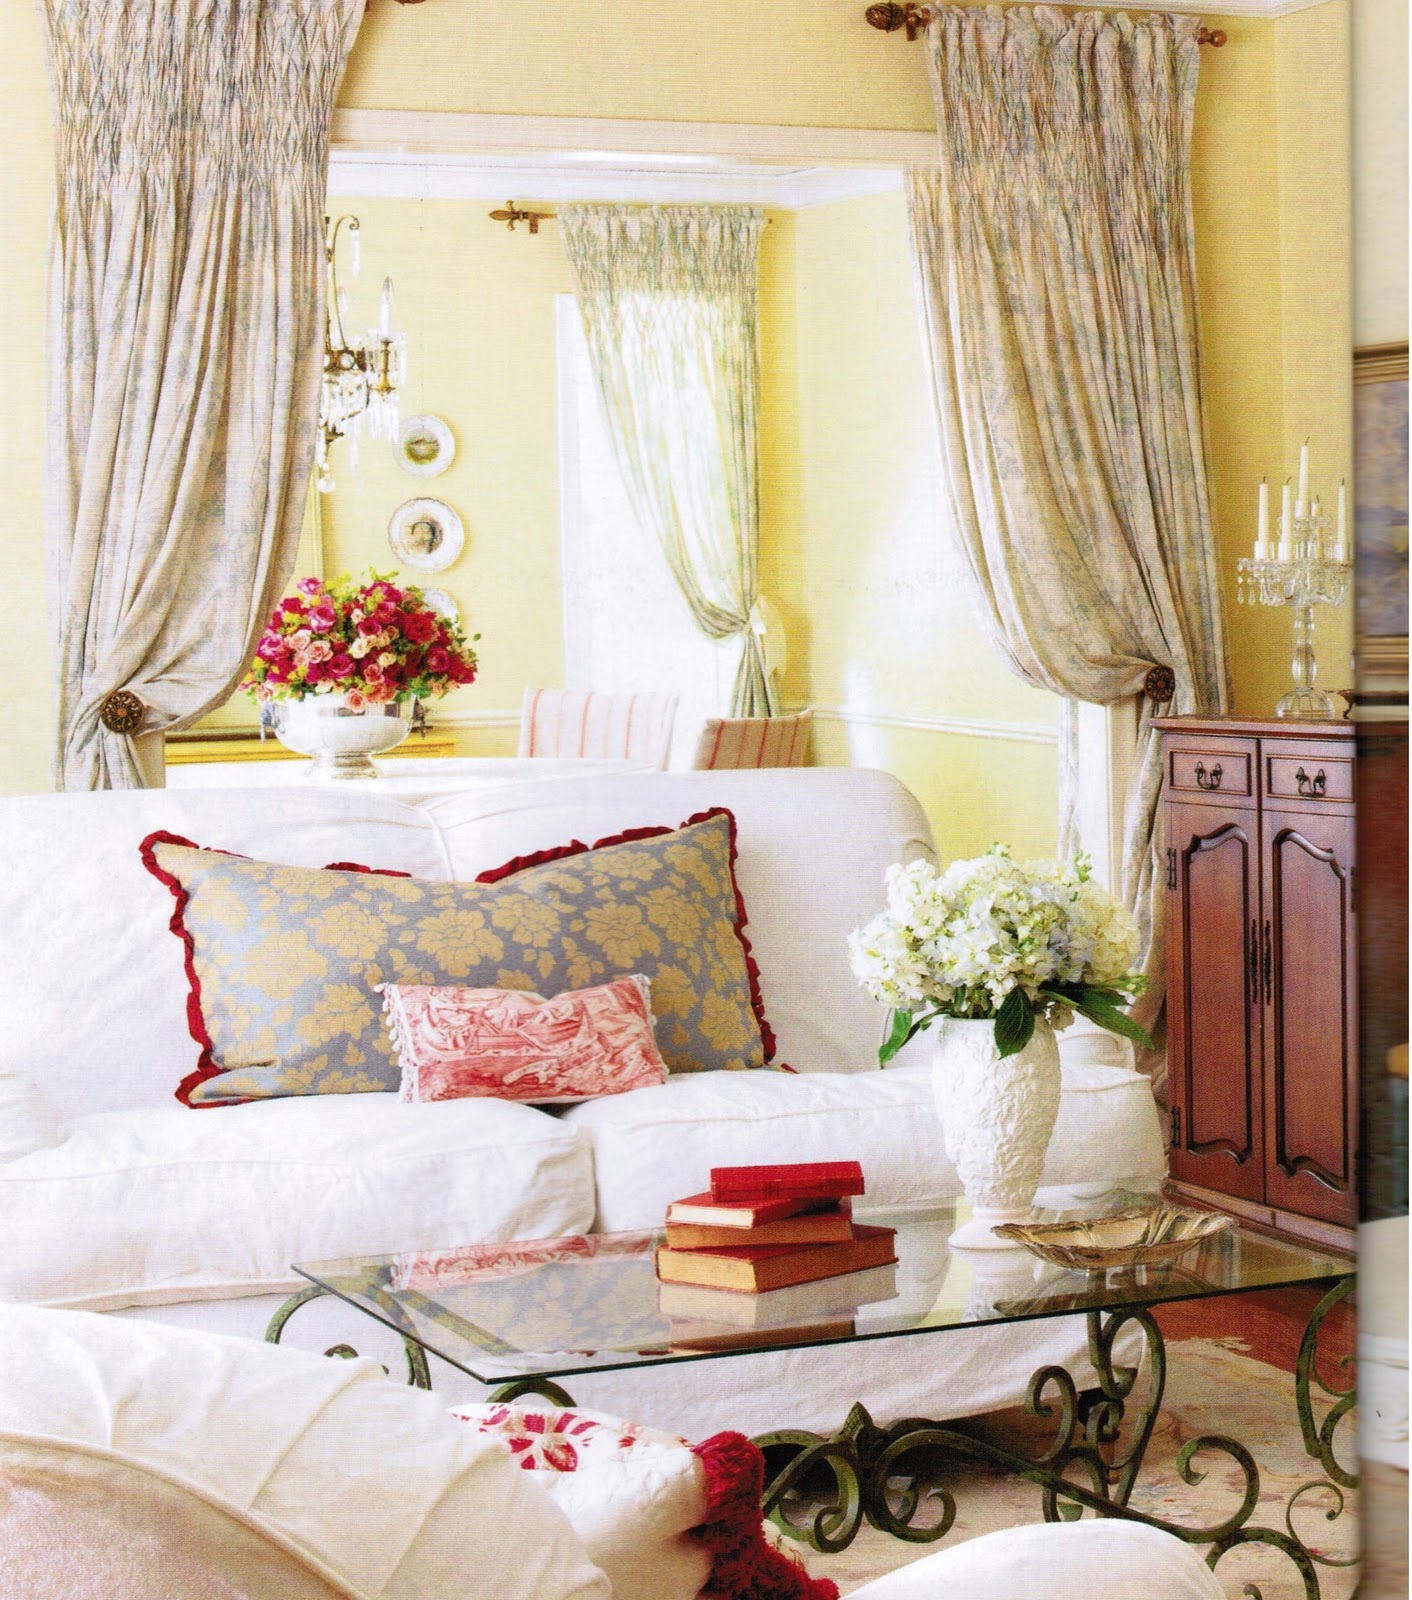 Maison decor french country enchanting yellow white - French decorating ideas living room ...